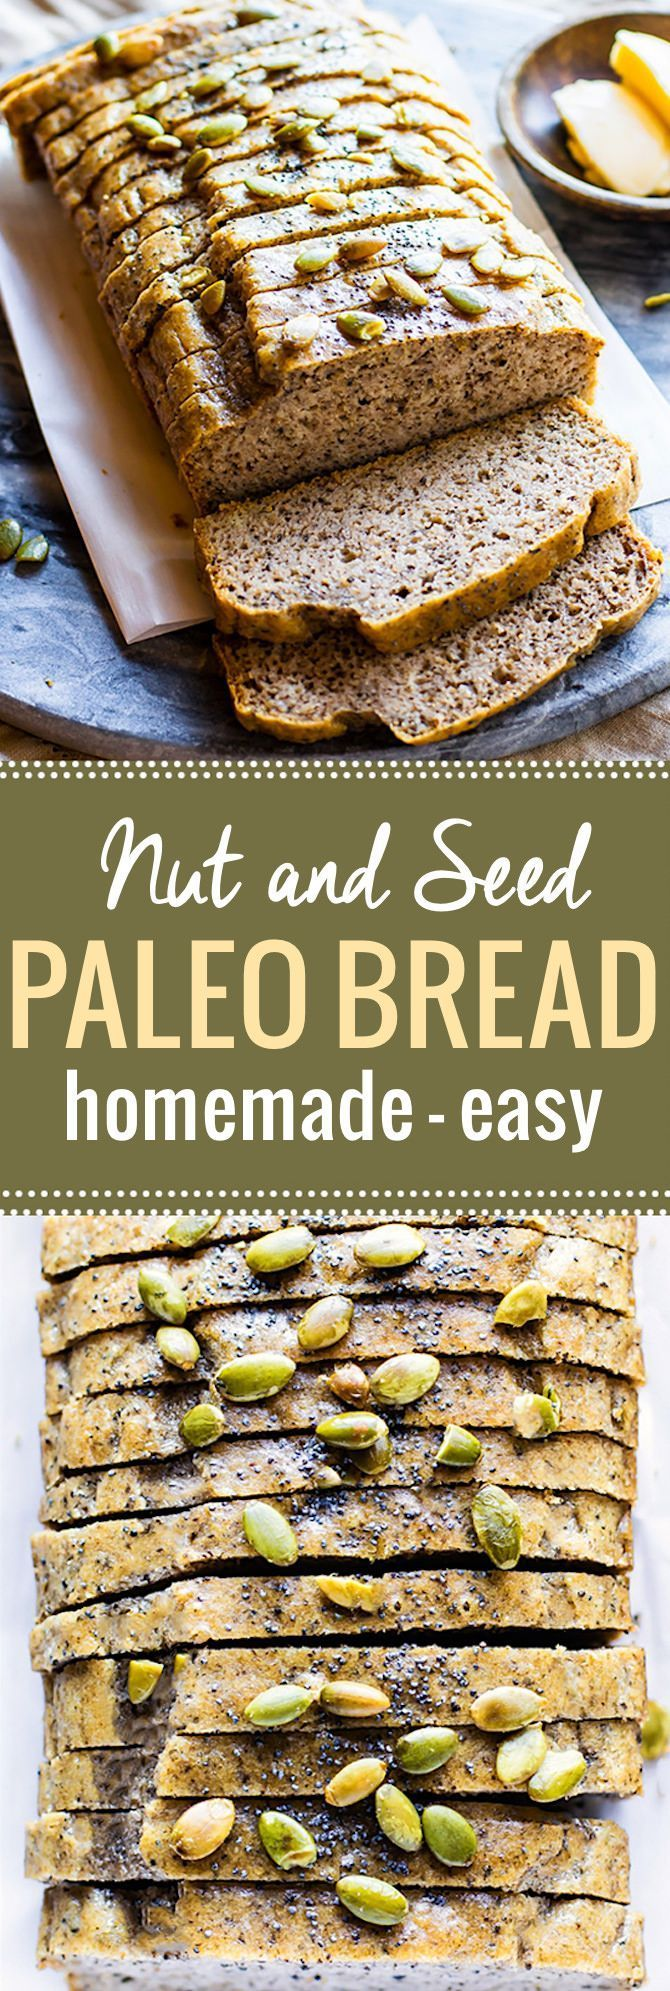 Homemade Nut and Seed Paleo Bread. Finally, a homemade paleo bread that is soft, easy to make, and great for sandwiches. This wholesome nuttybread is freezableand low carb! A grain free bread to enjoy at each meal. /cottercrunch/